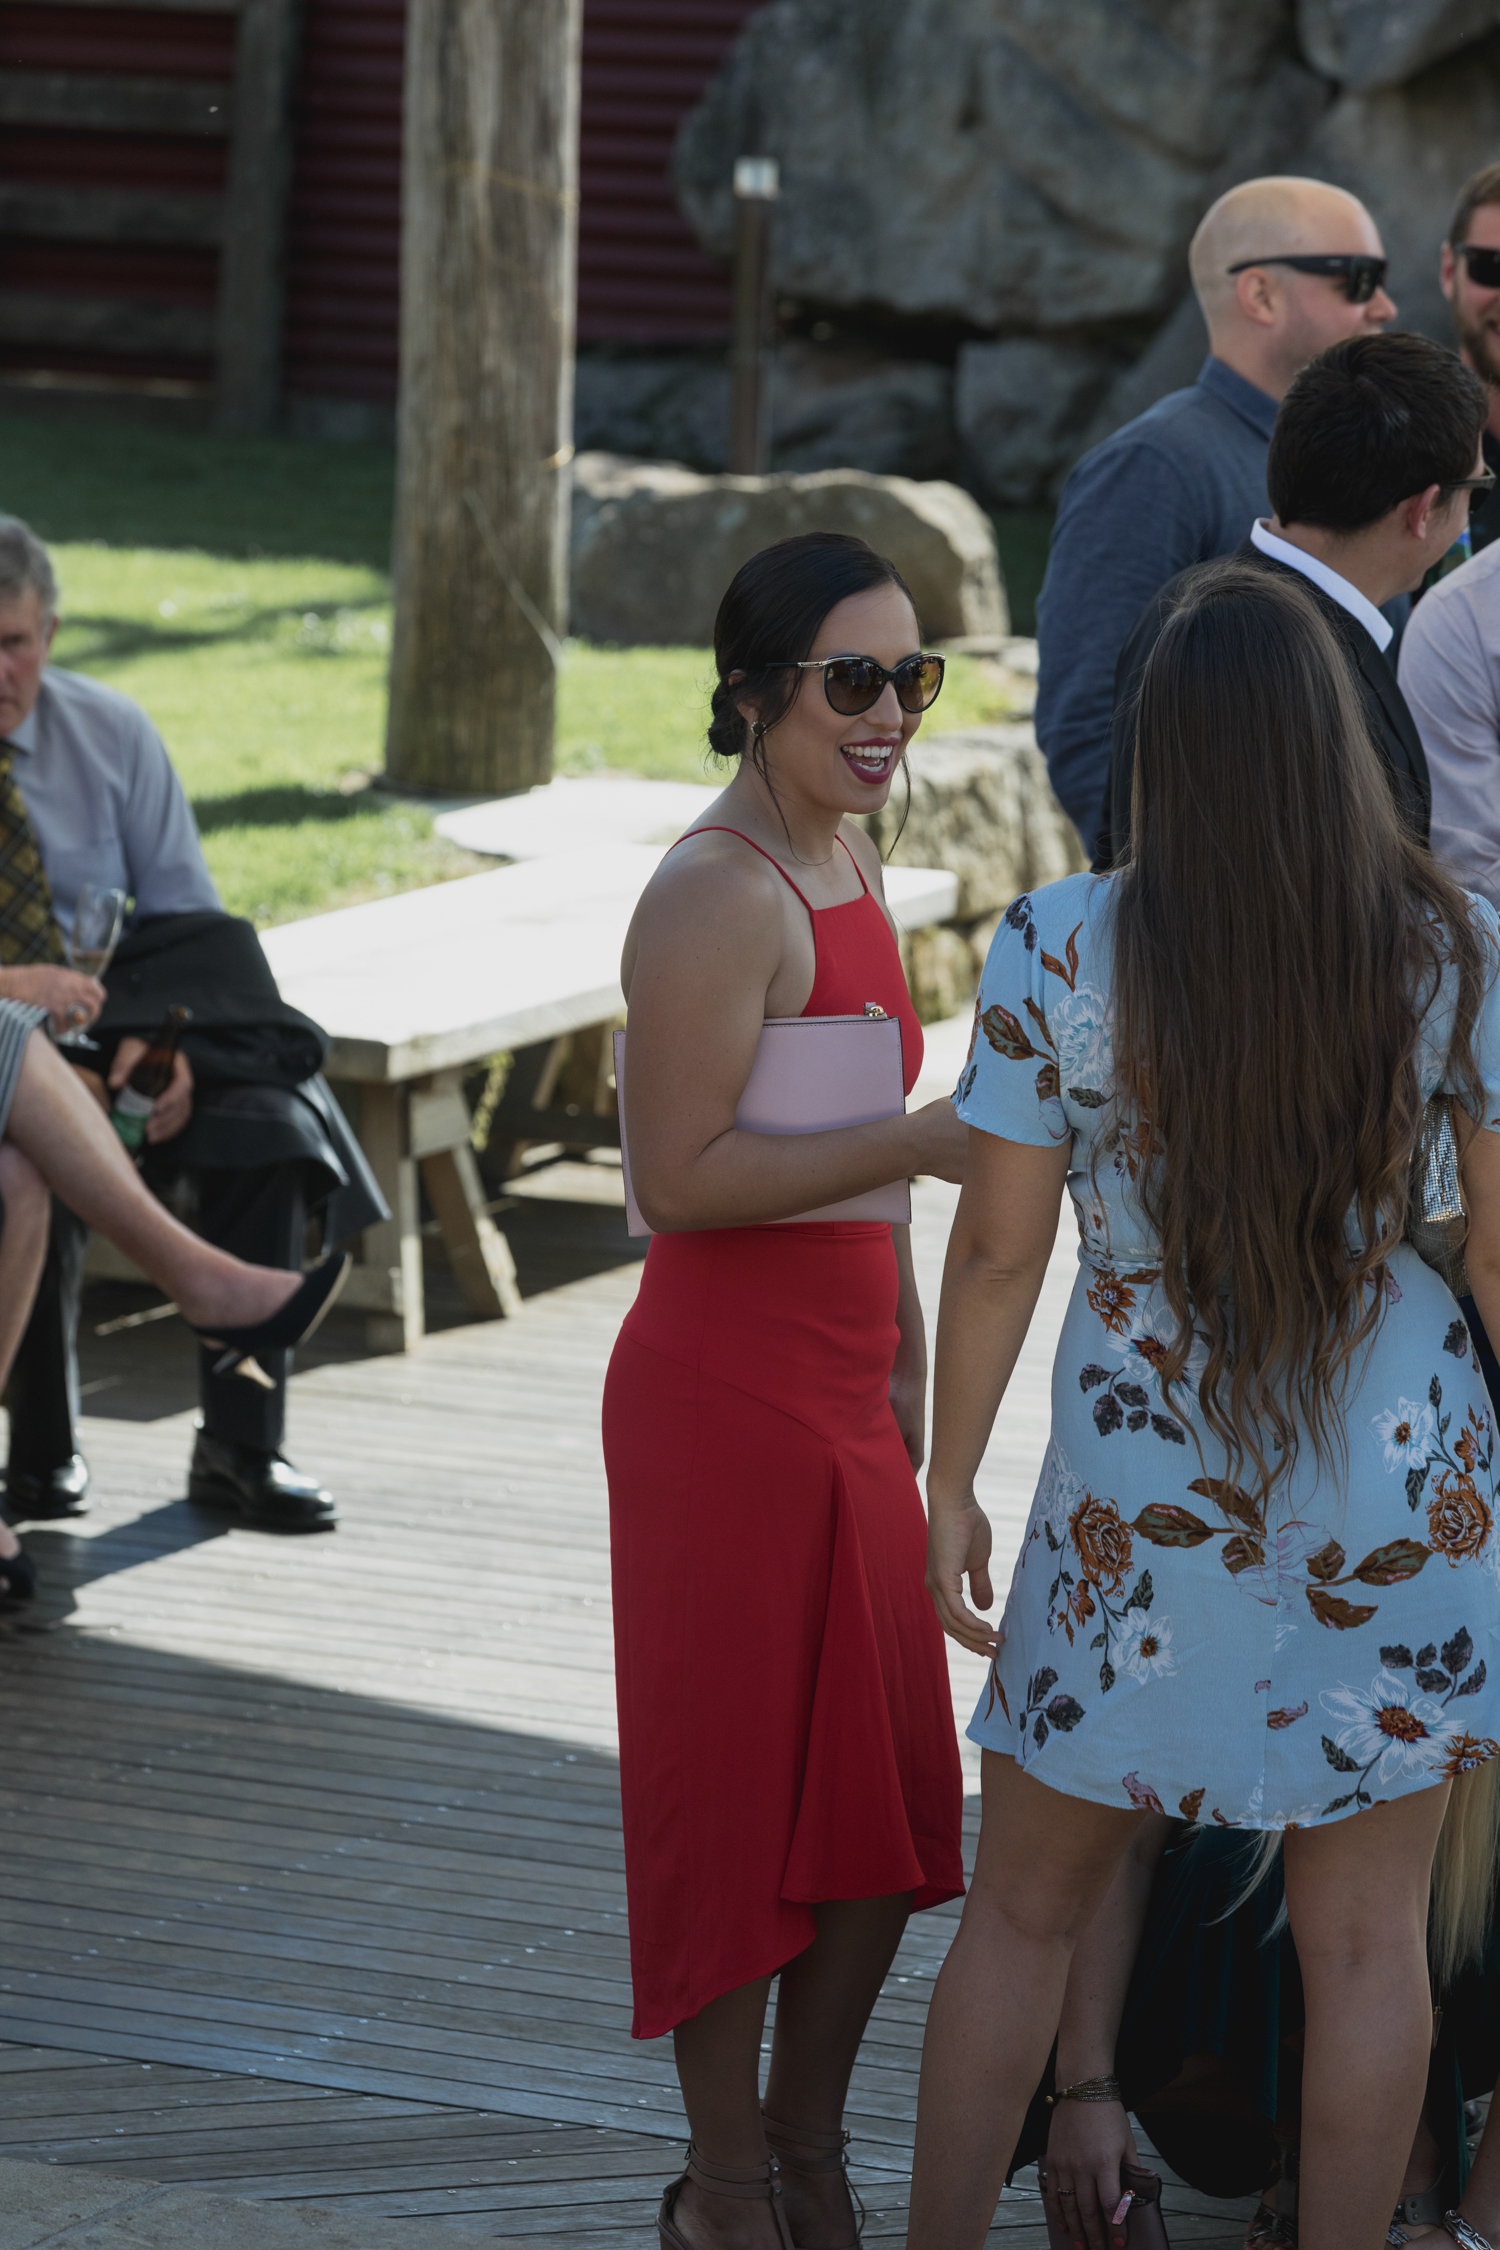 wedding-at-the-red-barn-new-zealand-wedding-photographer-guests-waiting-for-ceremony.jpg